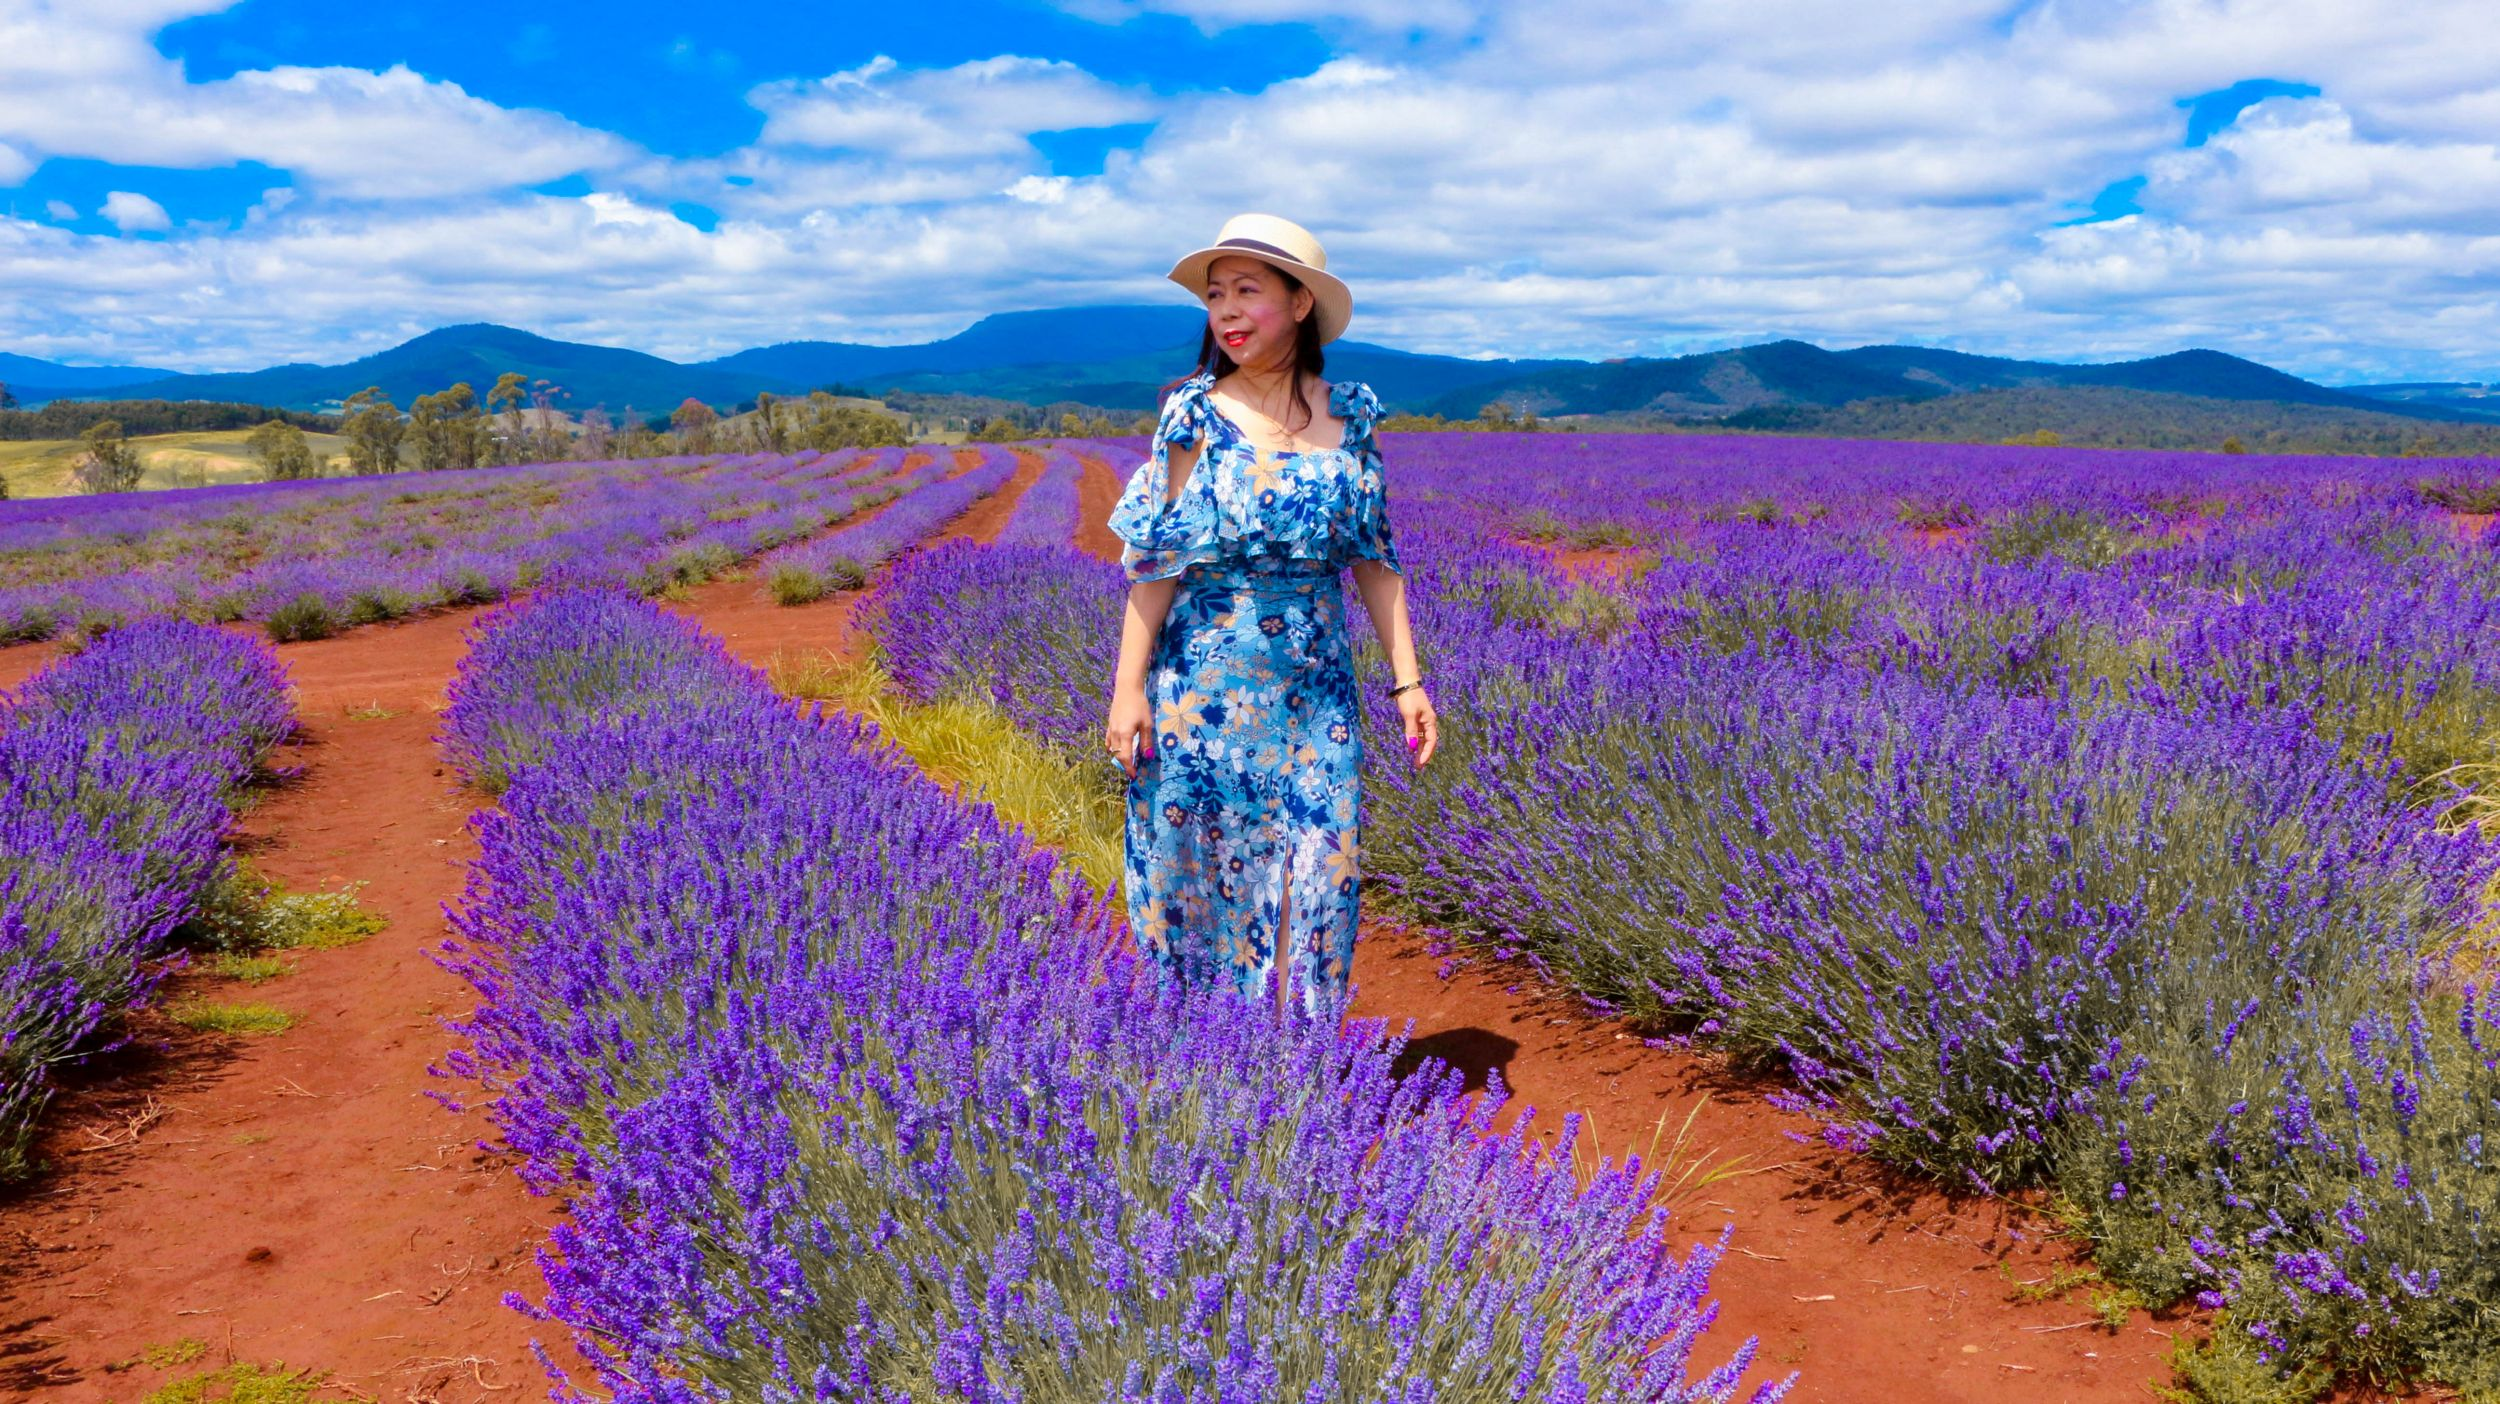 What to wear in Lavender farm